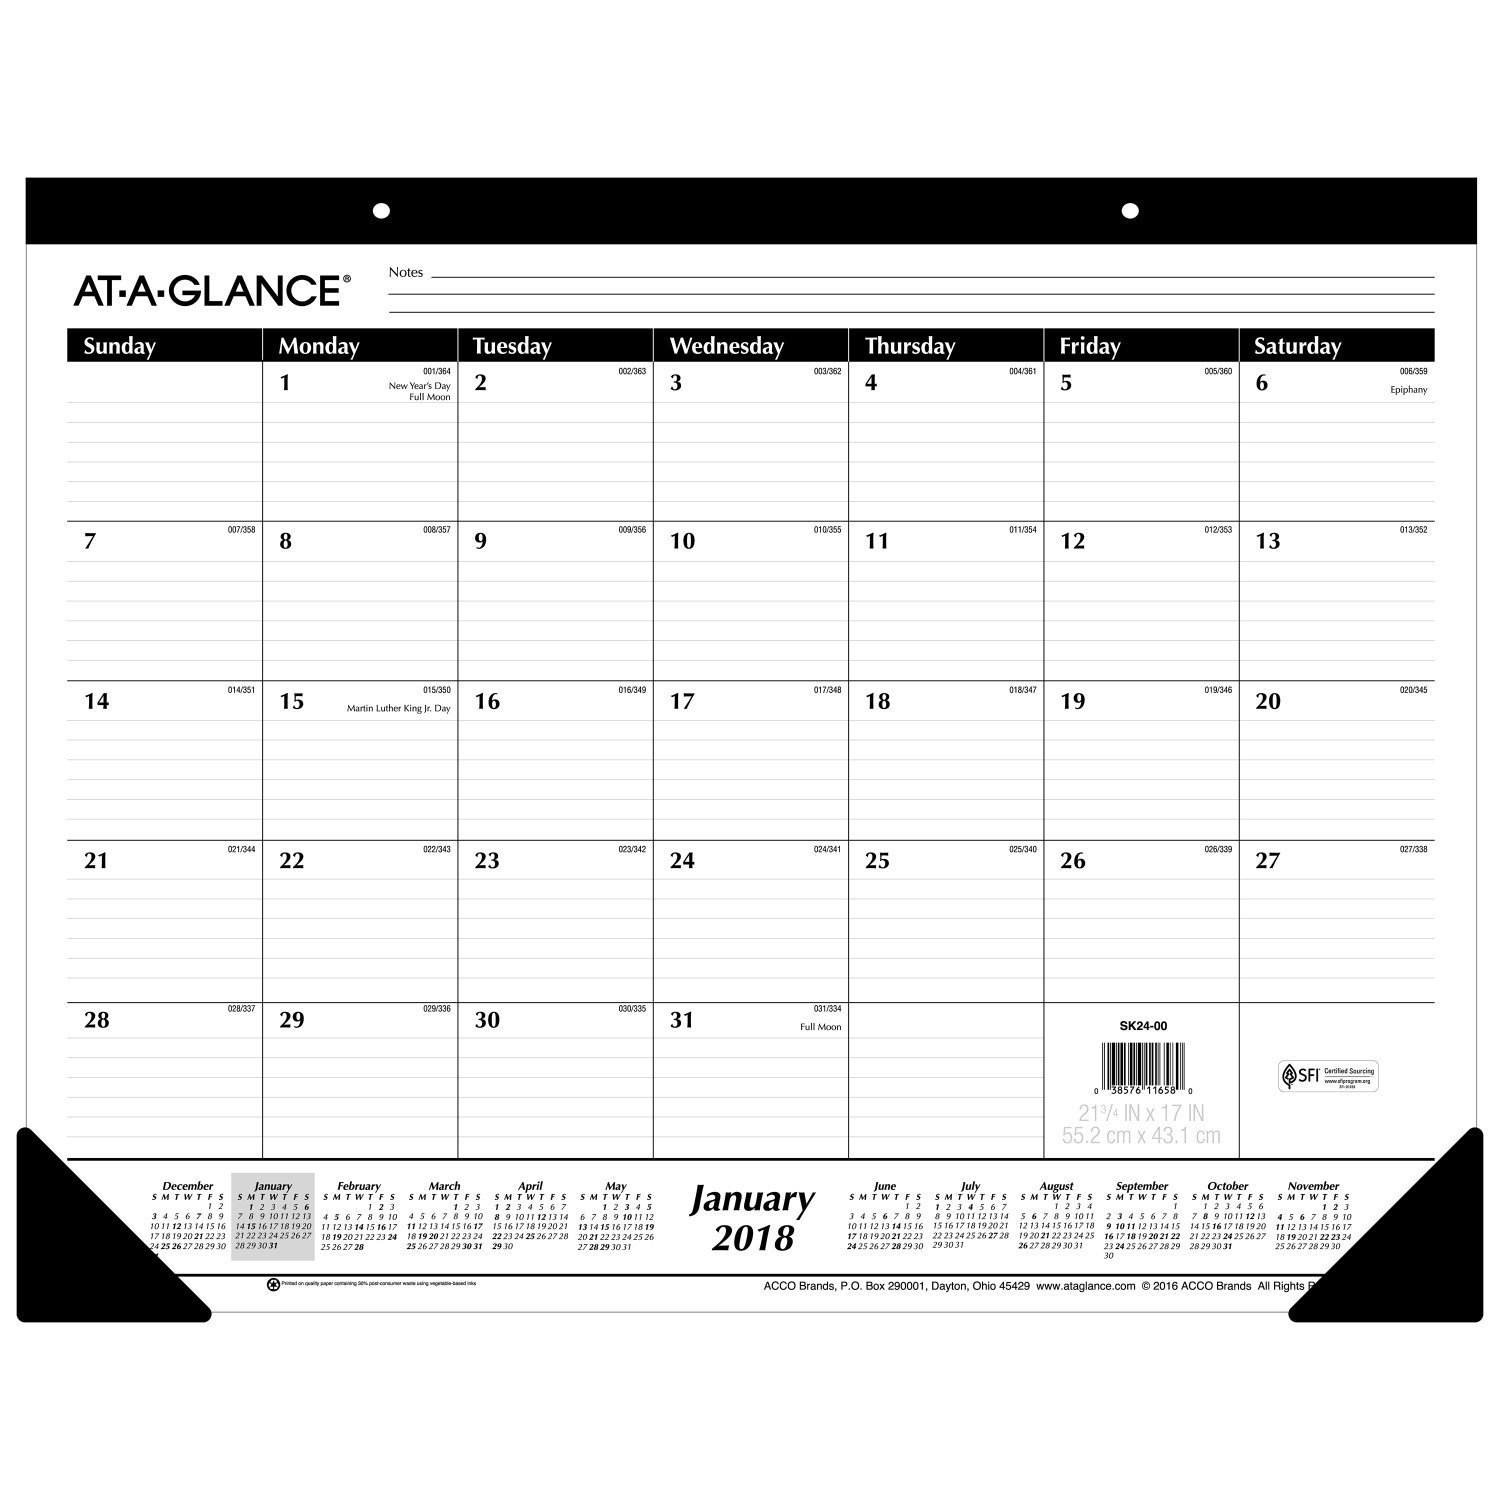 AT-A-GLANCE 2018 Monthly Desk Pad Calendars, Ruled Blocks, 12 Months, January 2018 - December 2018, 21-3/4'' x 17'', 24-Pack (AZ242400)